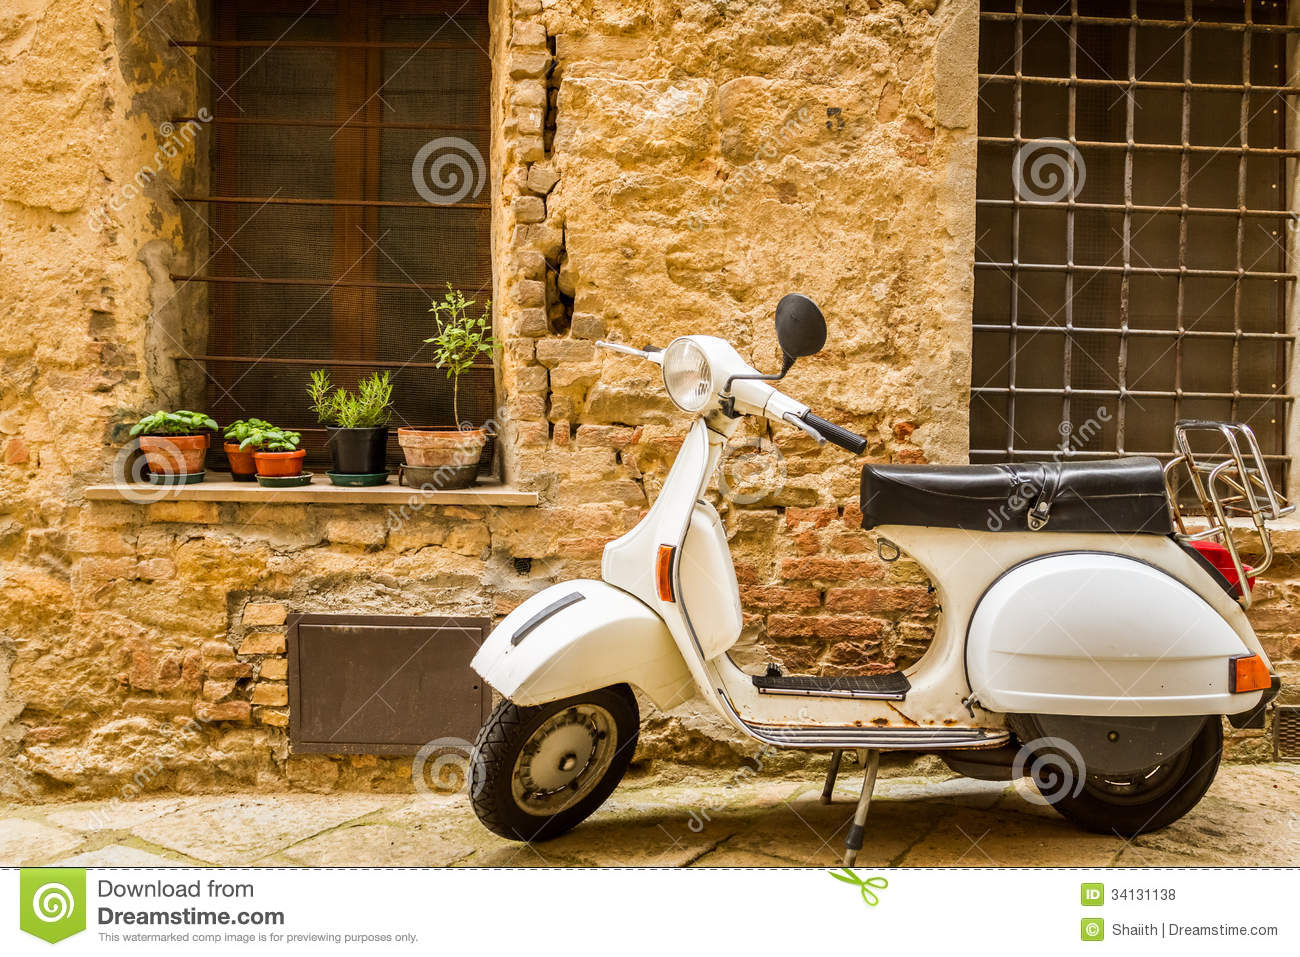 3 414 Vintage Vespa Photos Free Royalty Free Stock Photos From Dreamstime